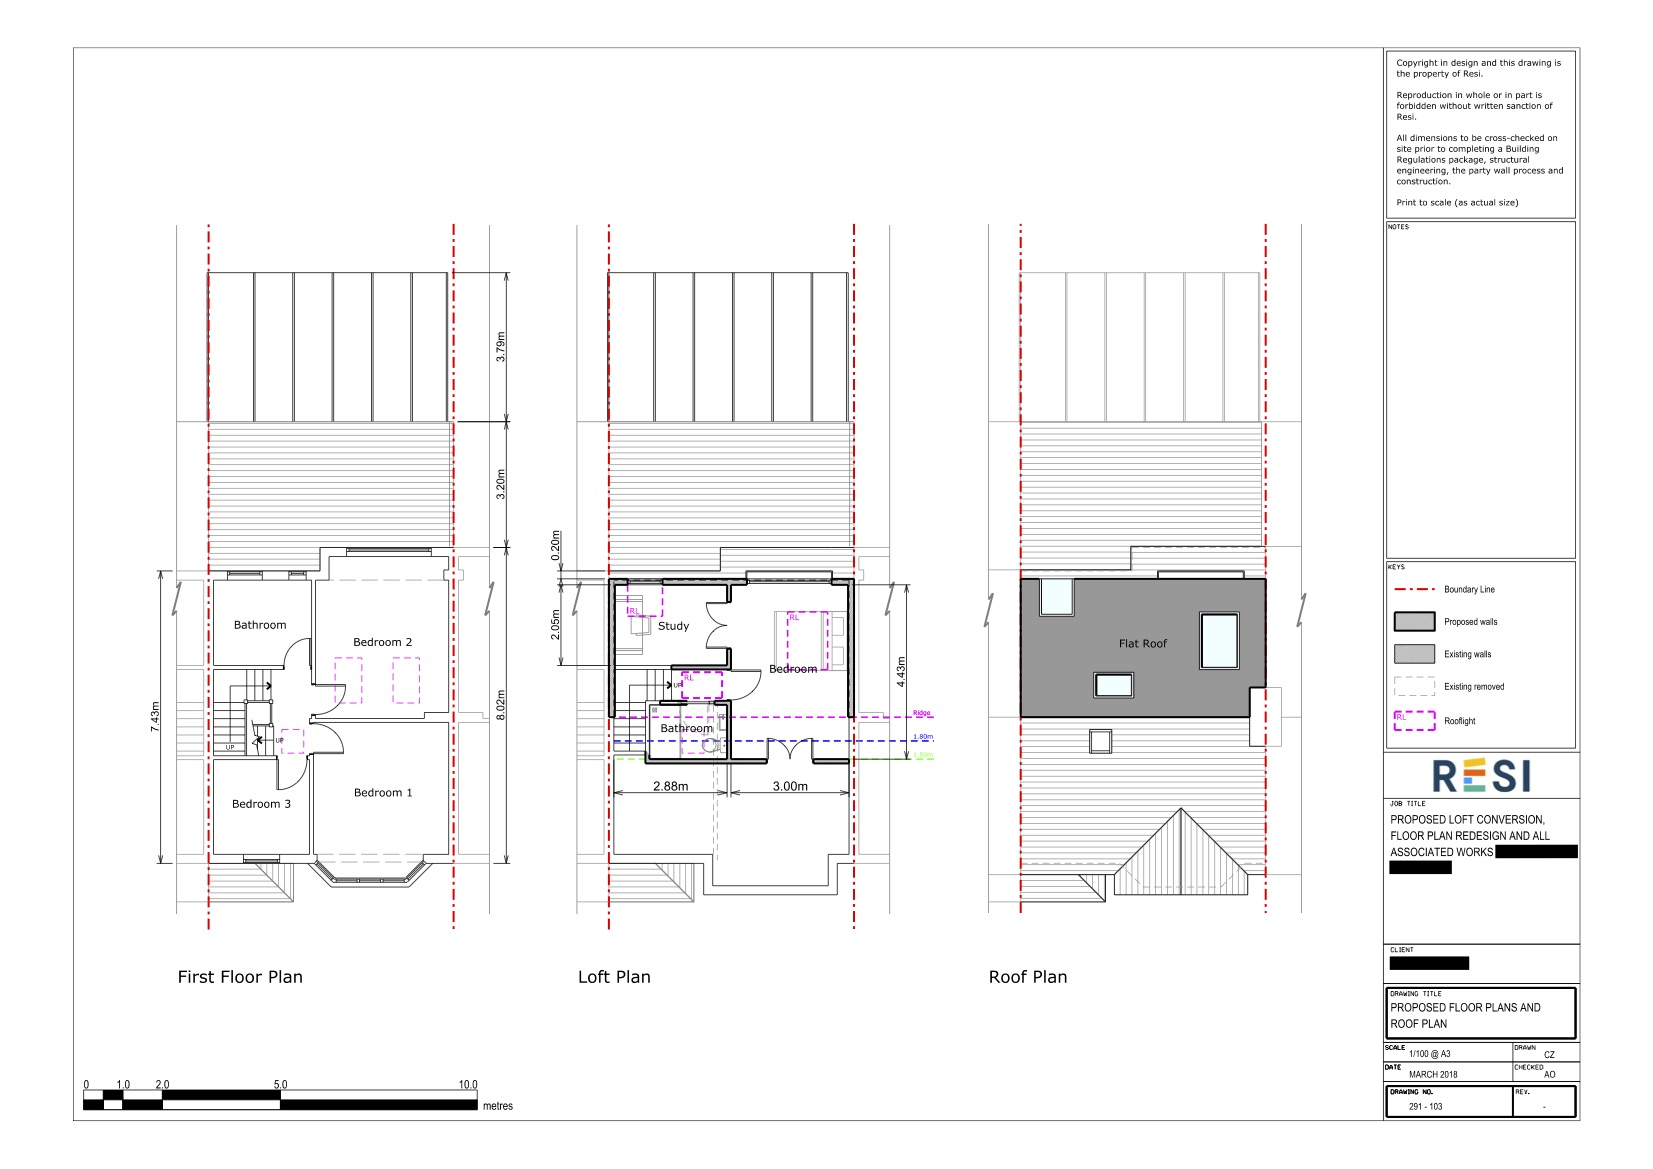 Loft architectural drawings  first floor and loft plans